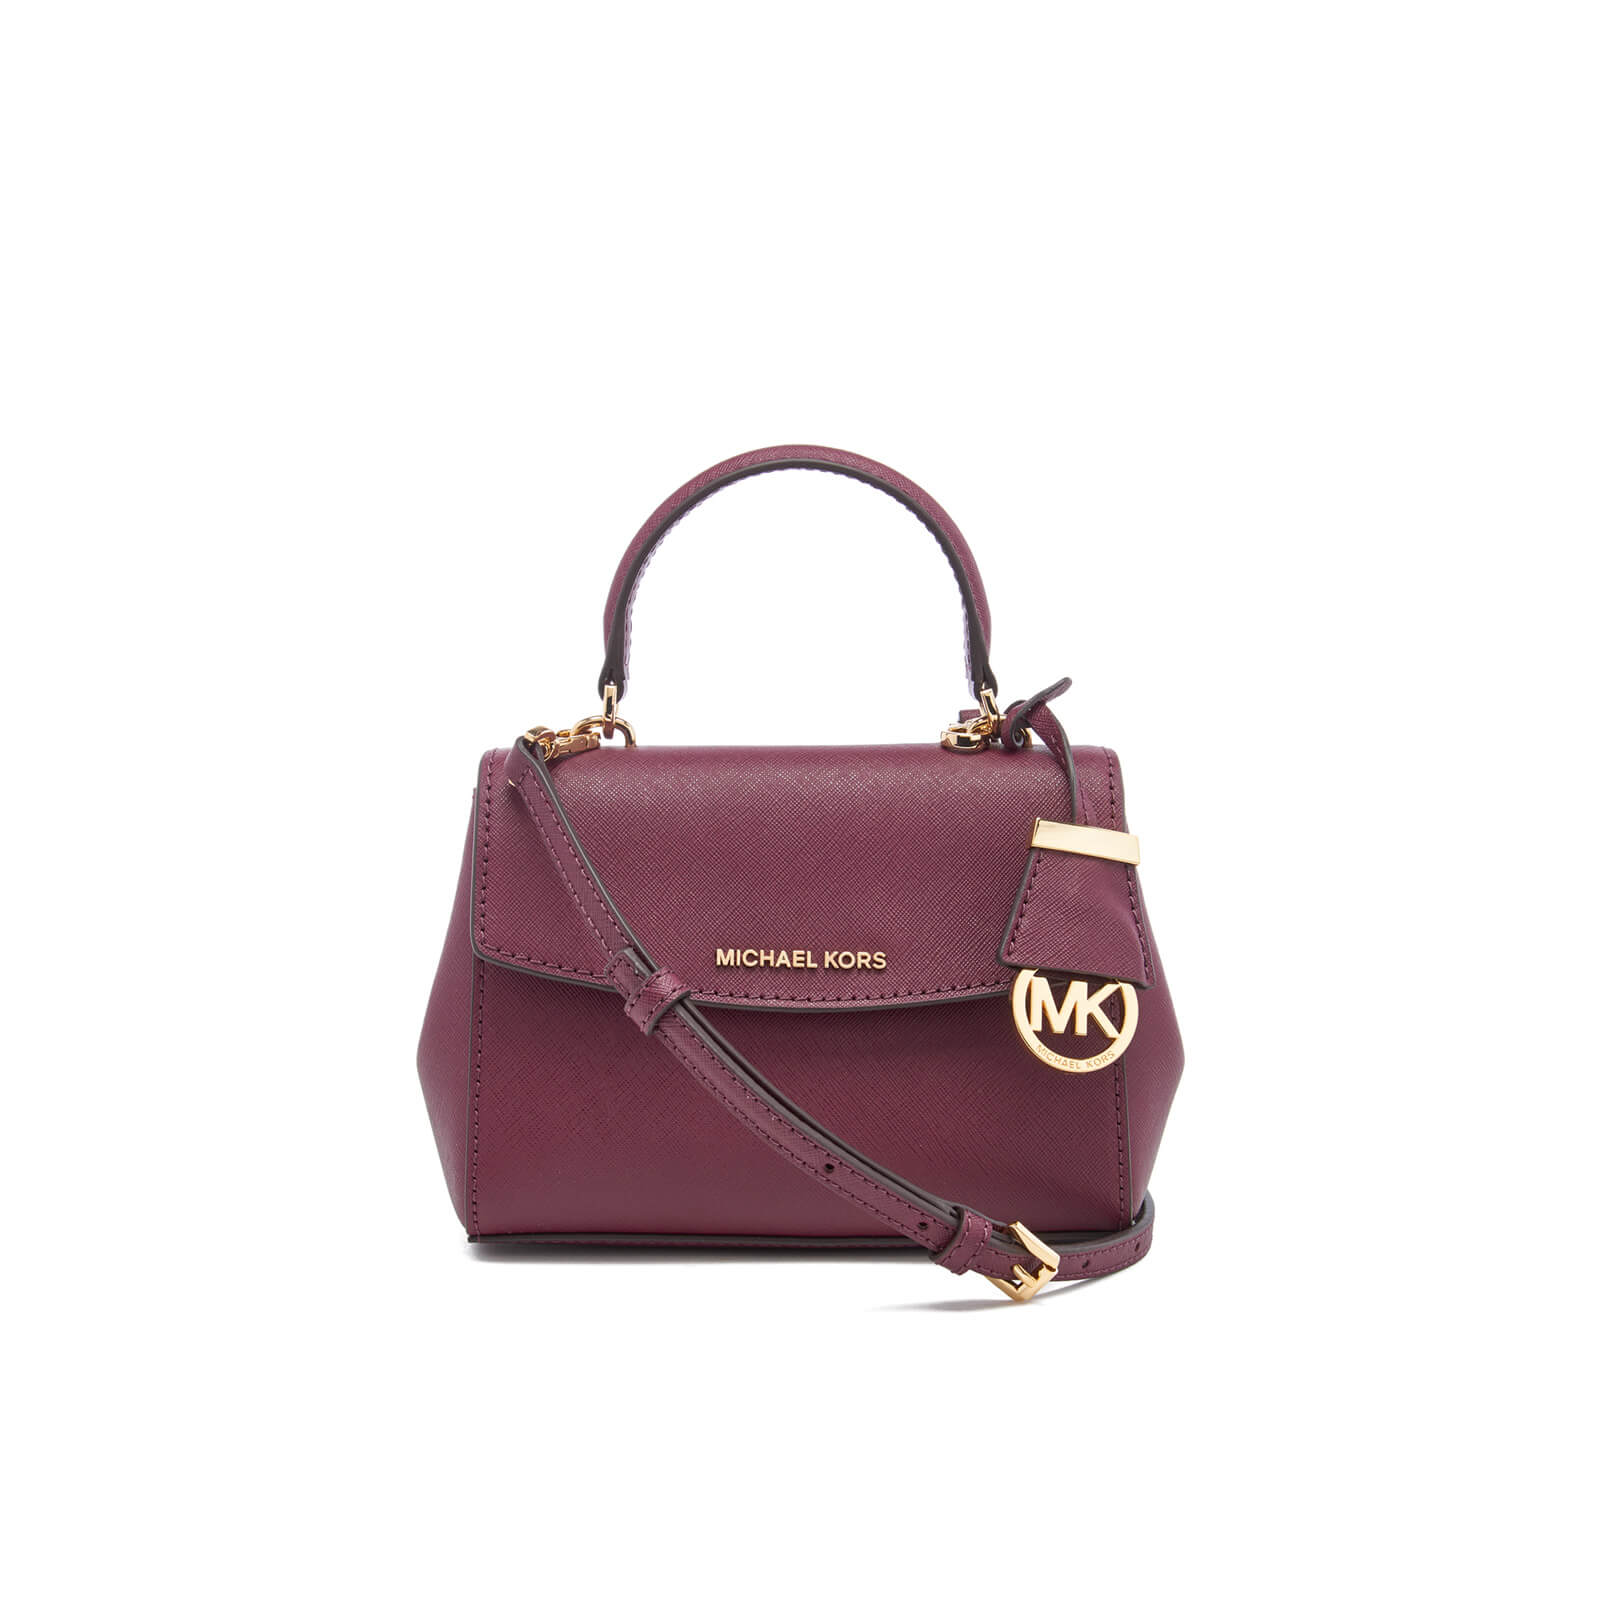 ba61f02873fb MICHAEL MICHAEL KORS Women's Ava XS Cross Body Bag - Plum - Free UK  Delivery over £50